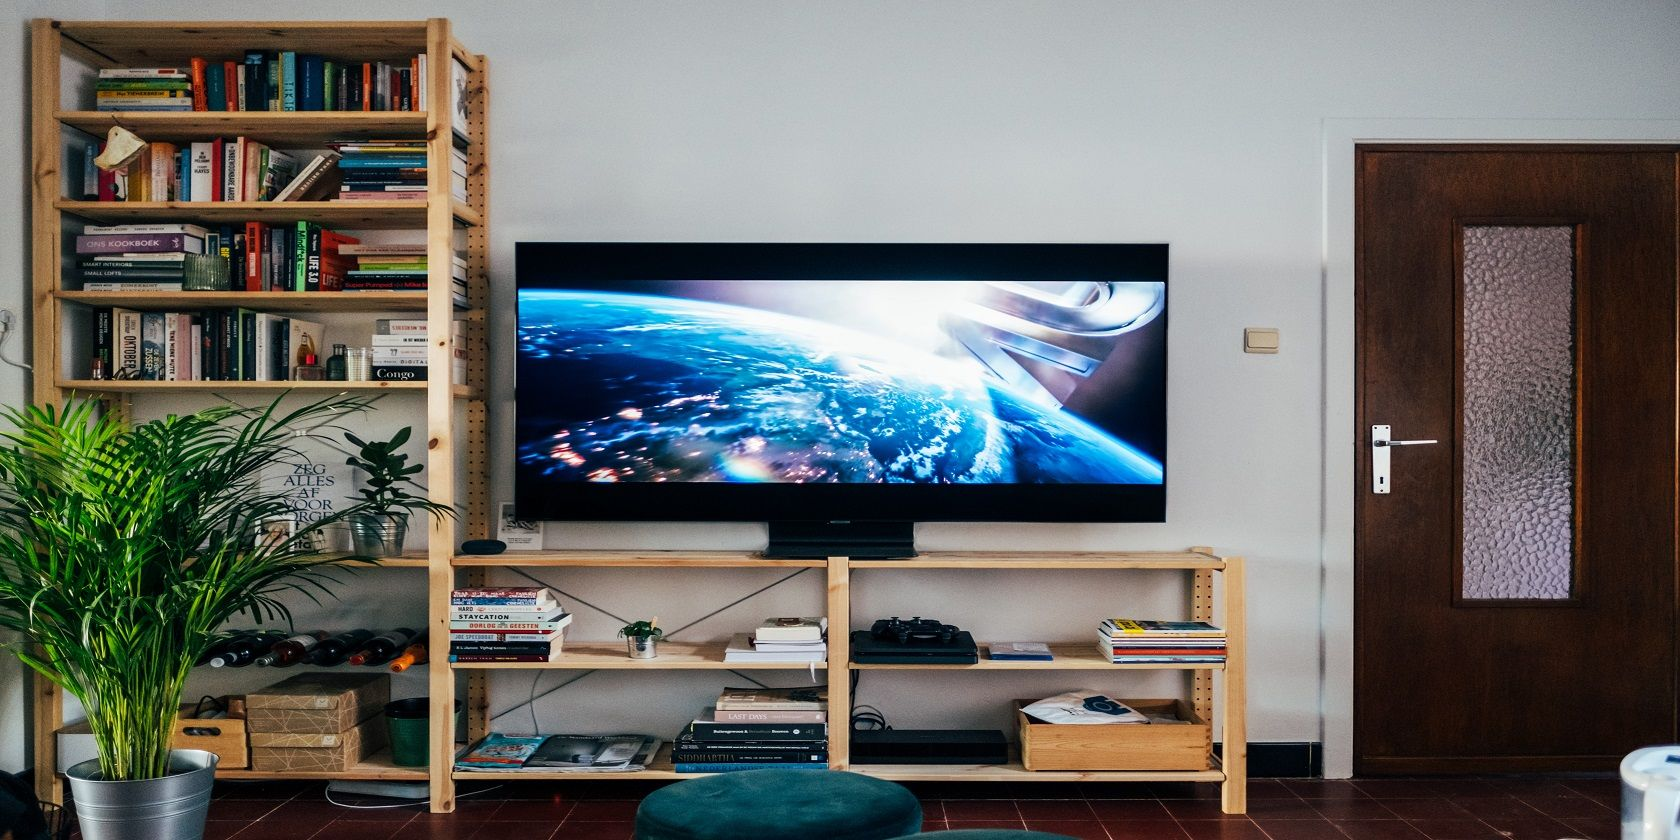 15 Fun and Easy DIY TV Stands to Build This Spring